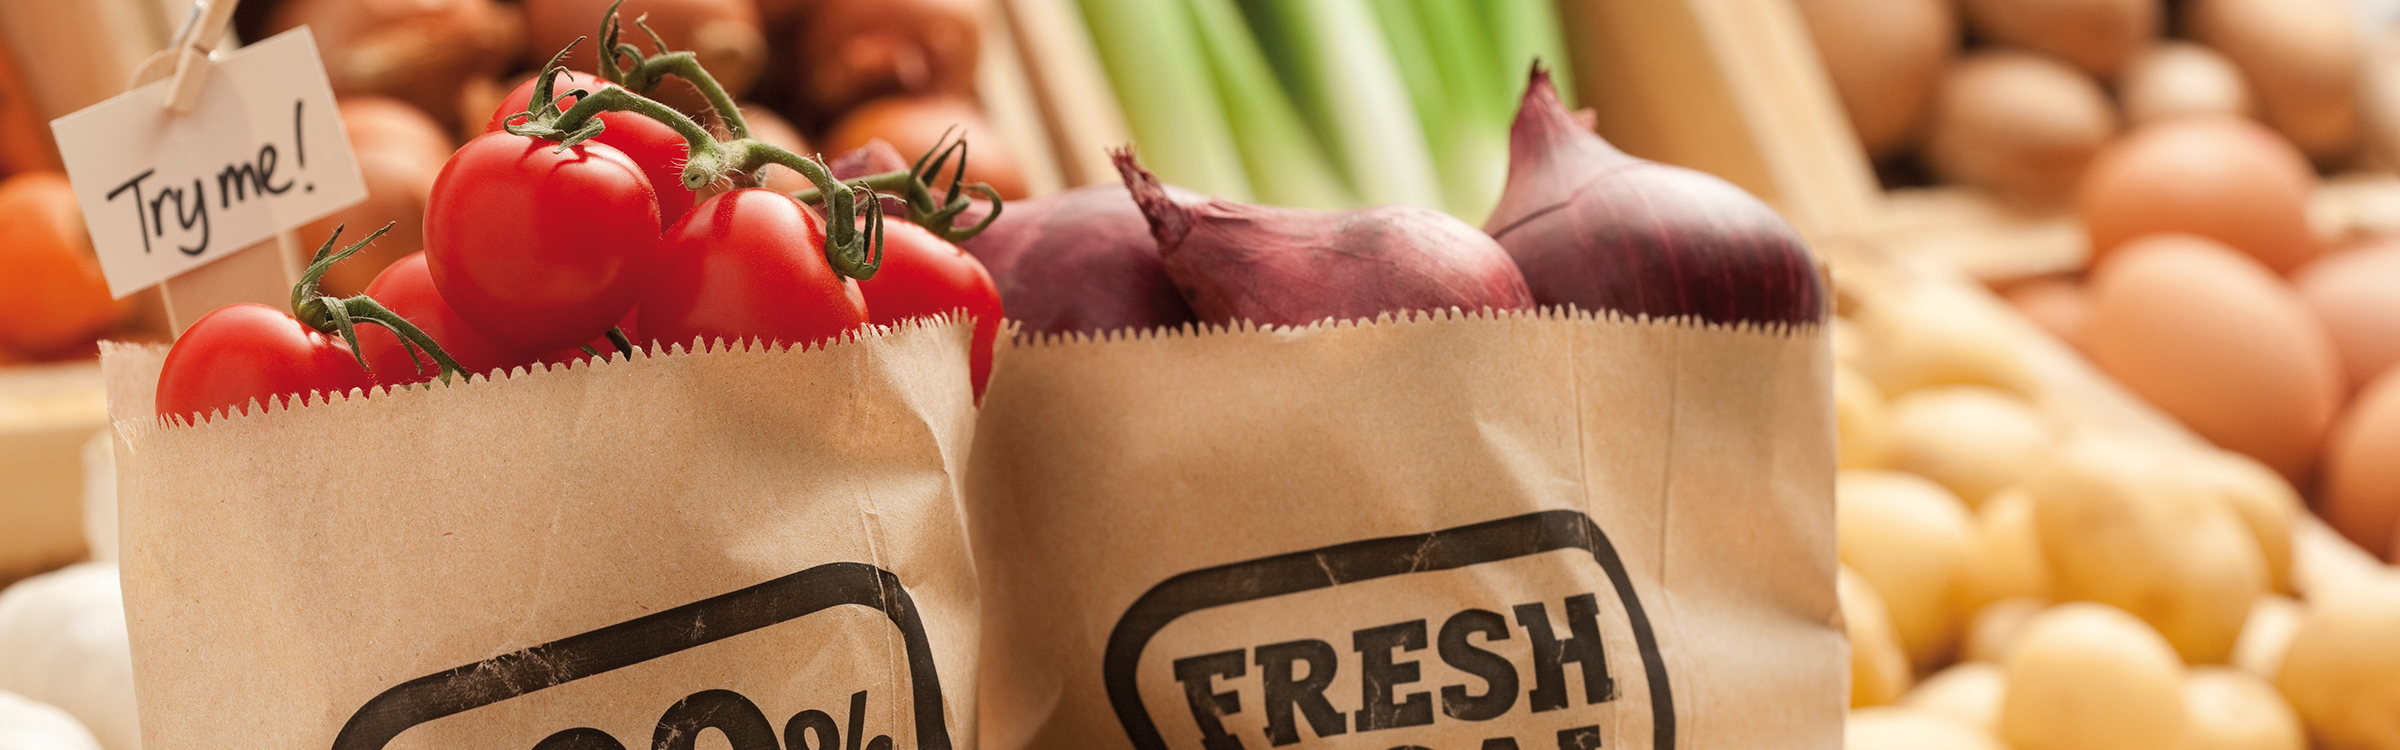 The Fast Food Industry: Trends, Inspiration & Insights